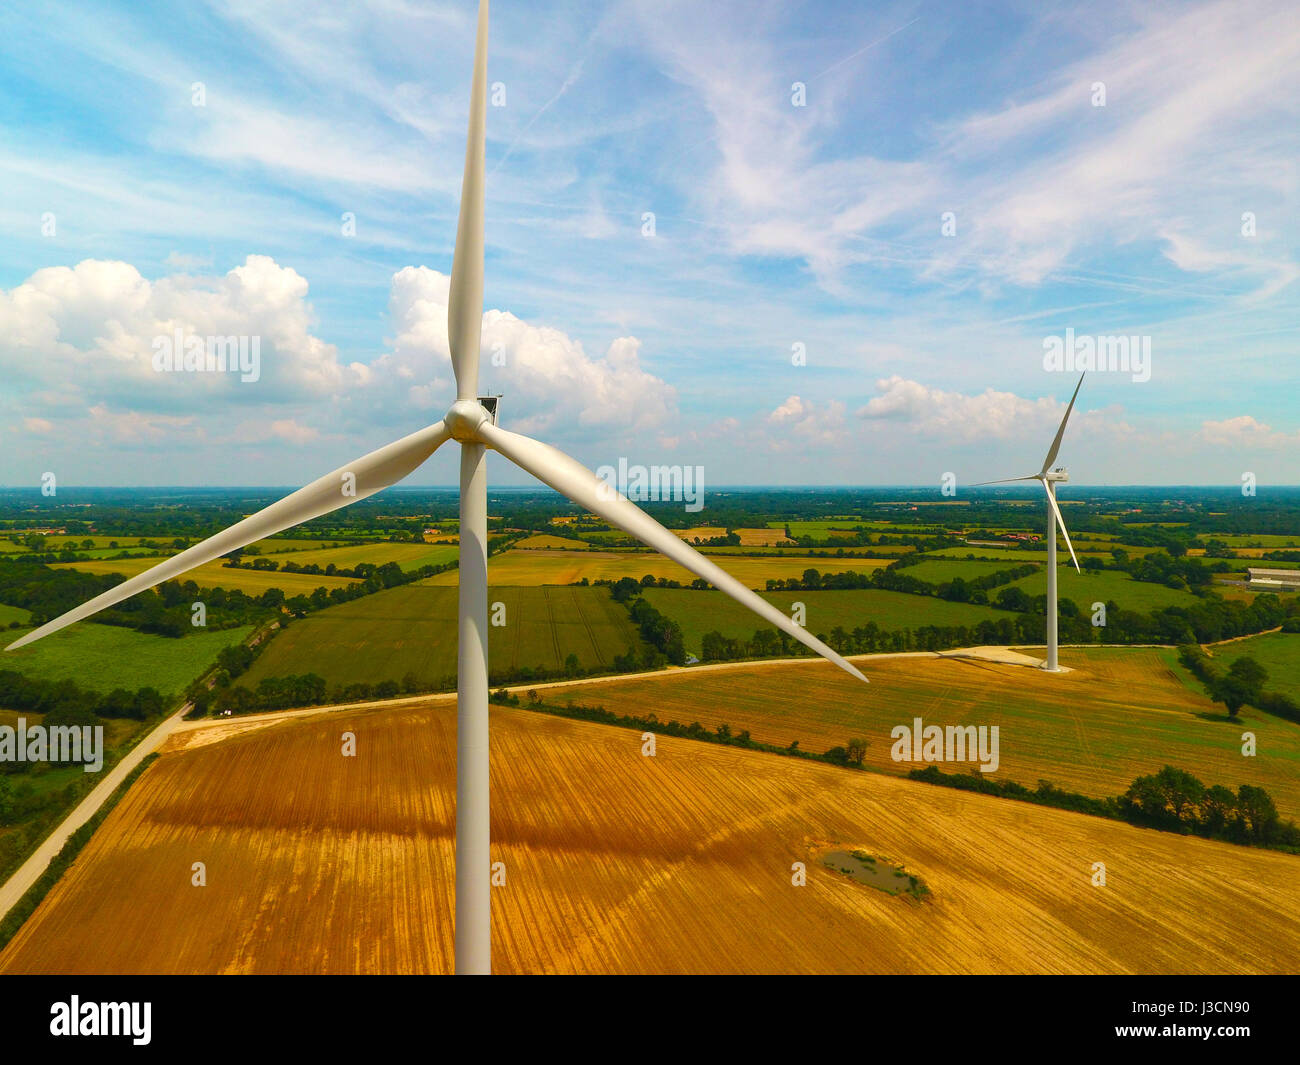 Drone photography of wind turbines in a field, near Sainte Pazanne, France Stock Photo